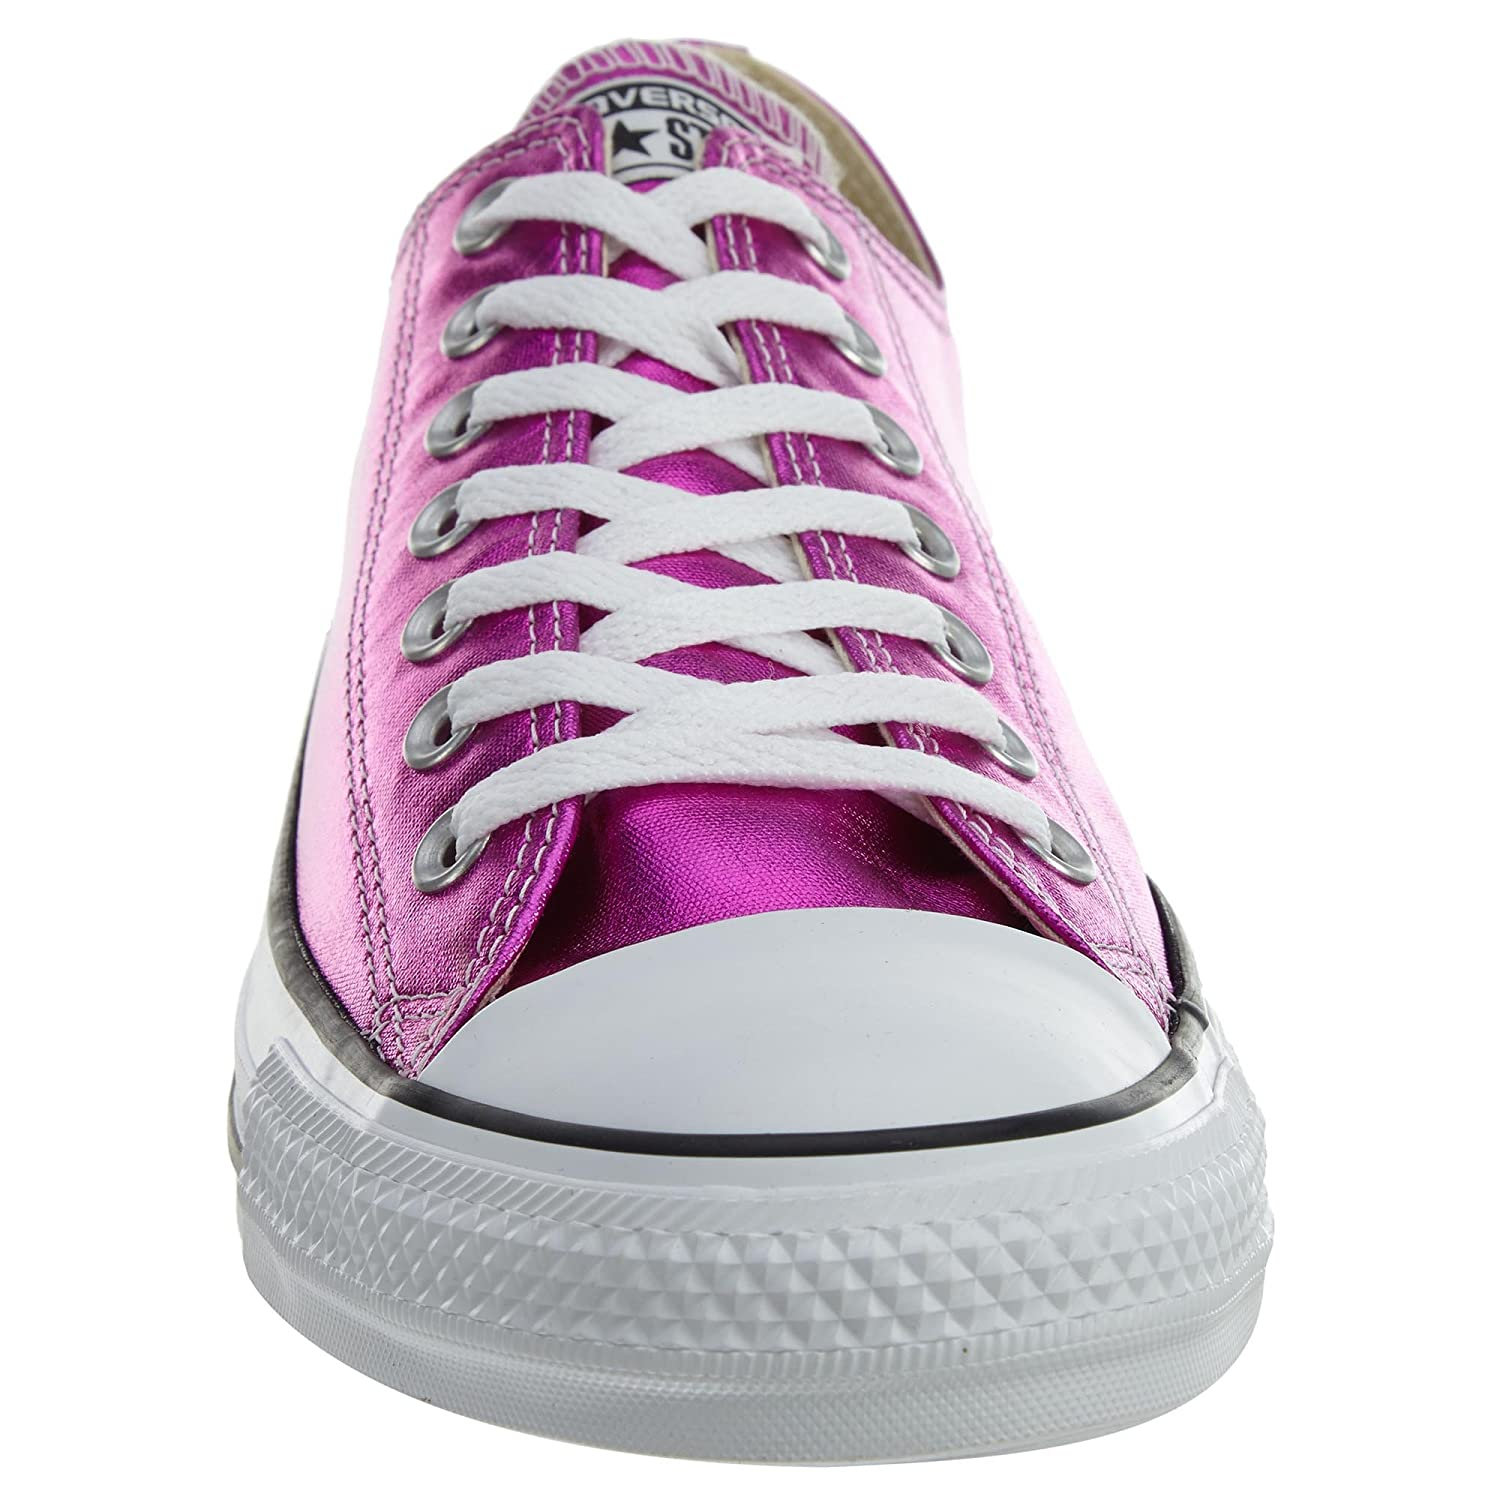 Converse Chuck Taylor All Star Seasonal Colors Ox B01HSNV4LK Medium Glow/Black/White / 9 B(M) US|Magenta Glow/Black/White Medium ee0dca